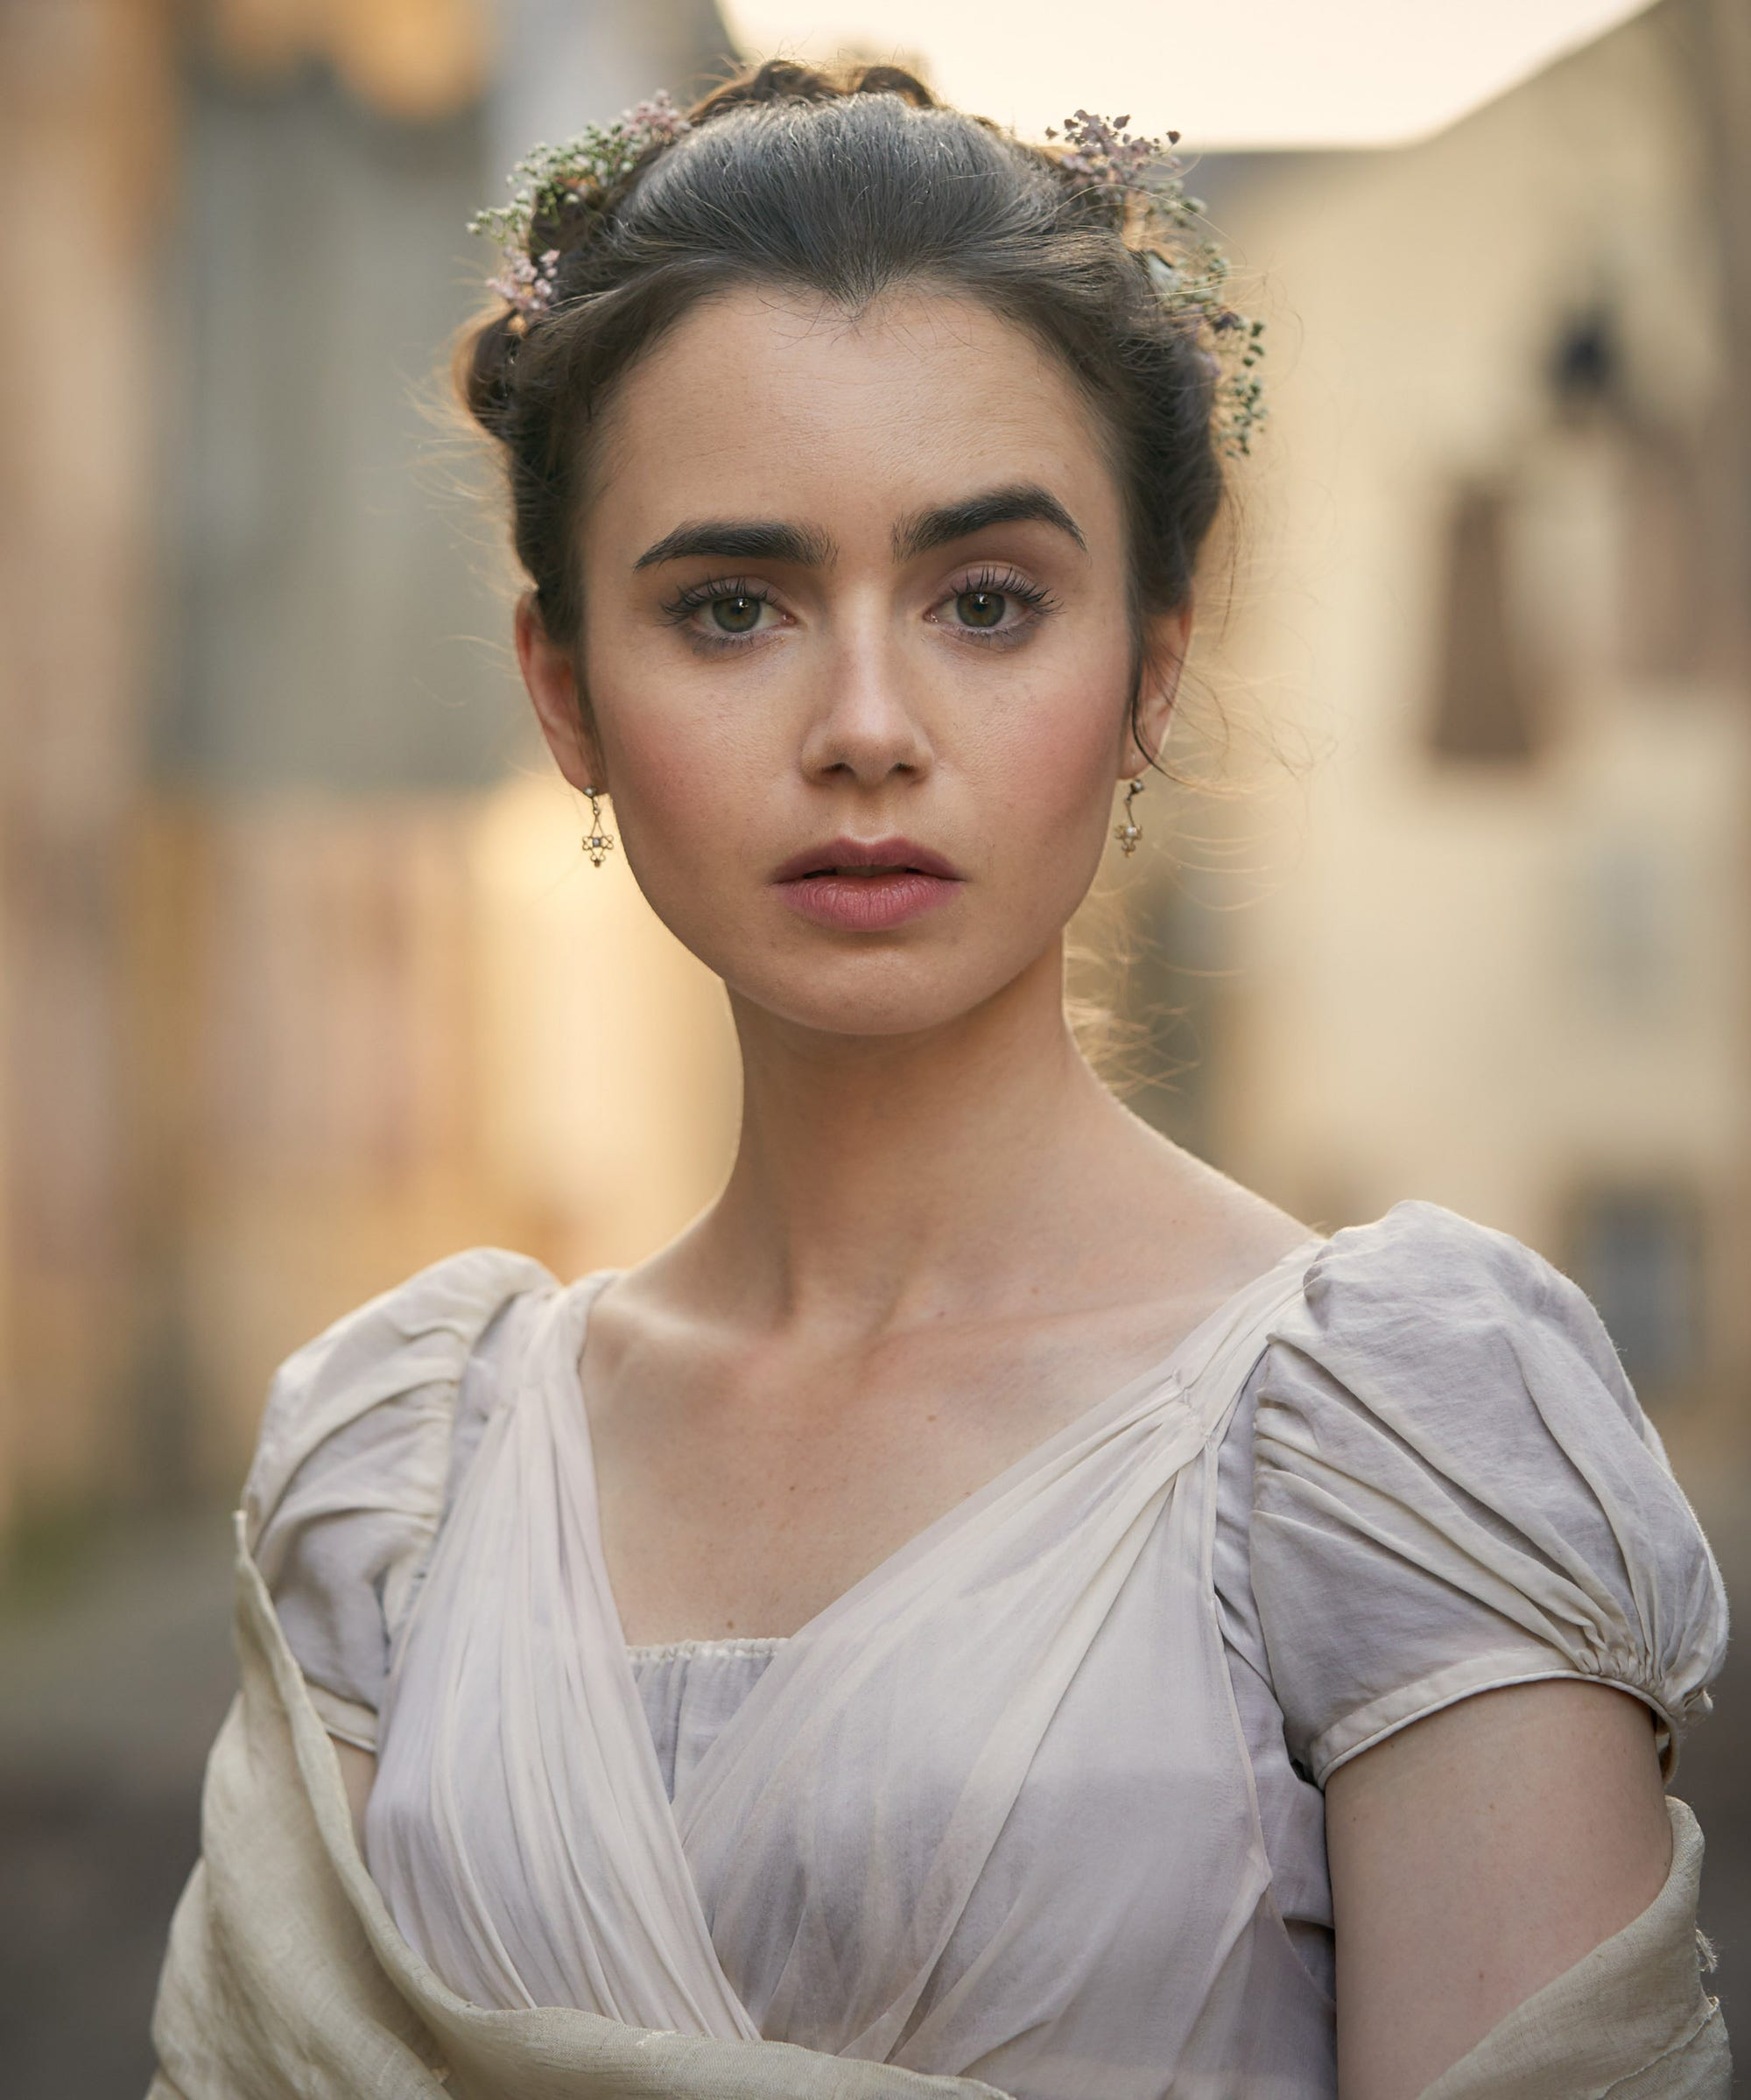 New Bbc Movie Les Misérables Starring Lily Collins 2019